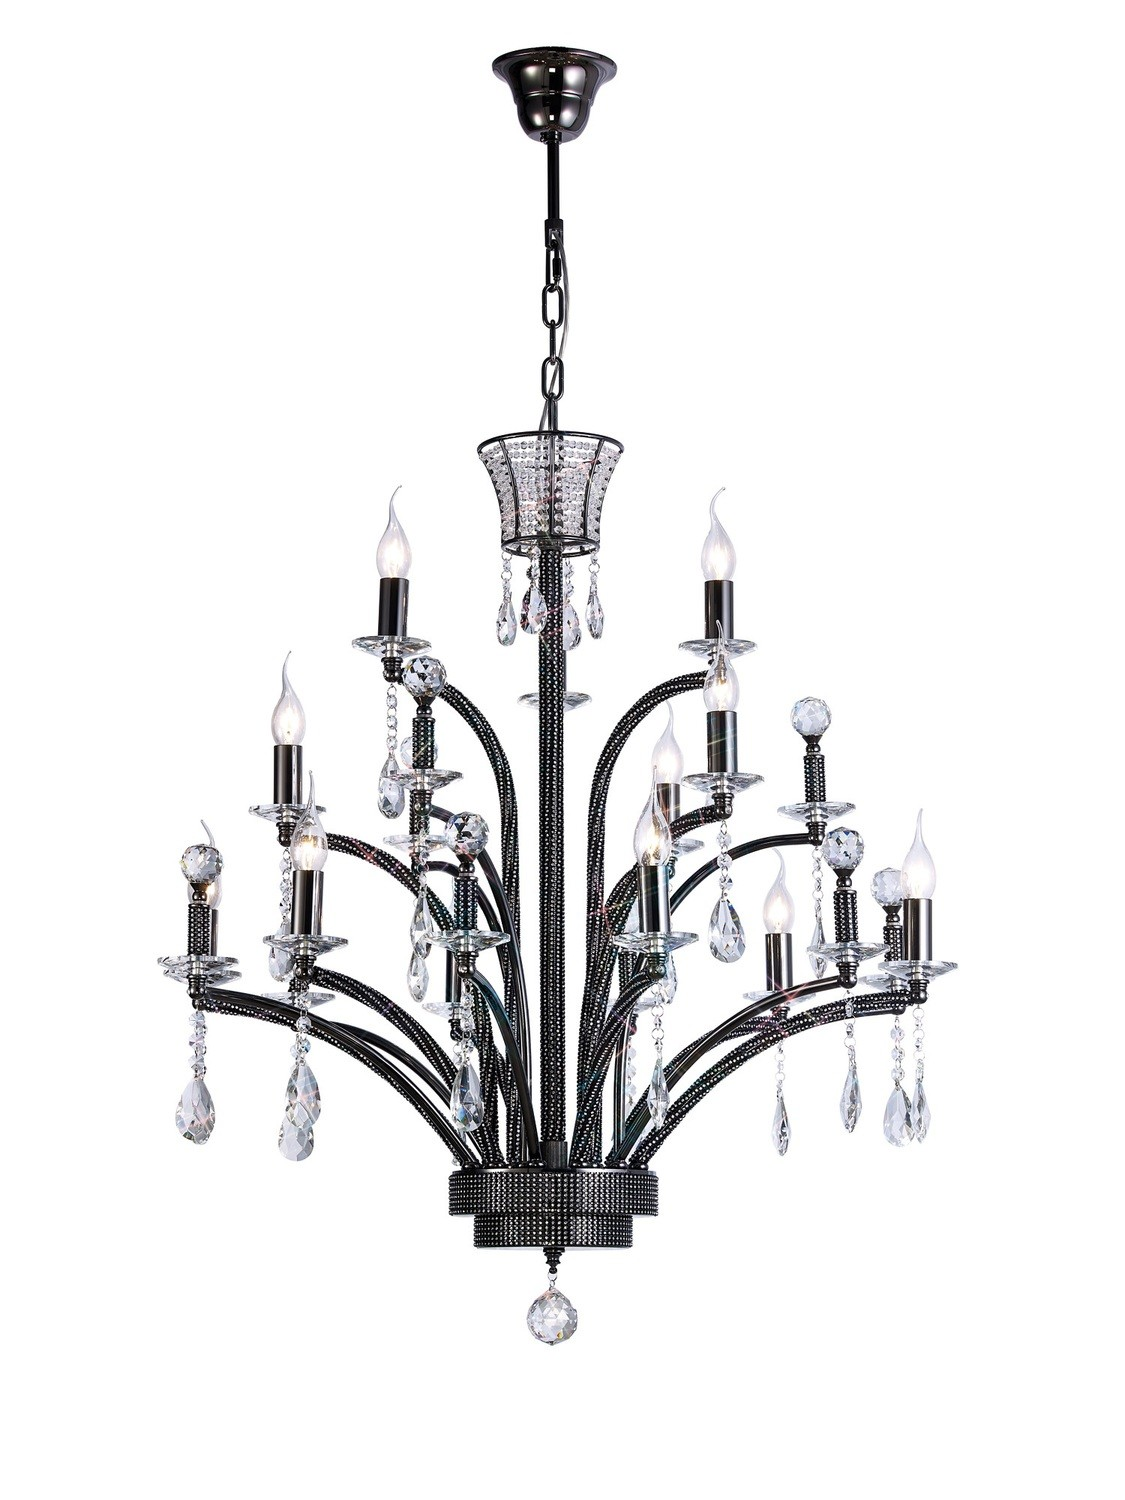 Orlando Pendant Large 12 Light Black Chrome (ITEM REQUIRES ASSEMBLY)